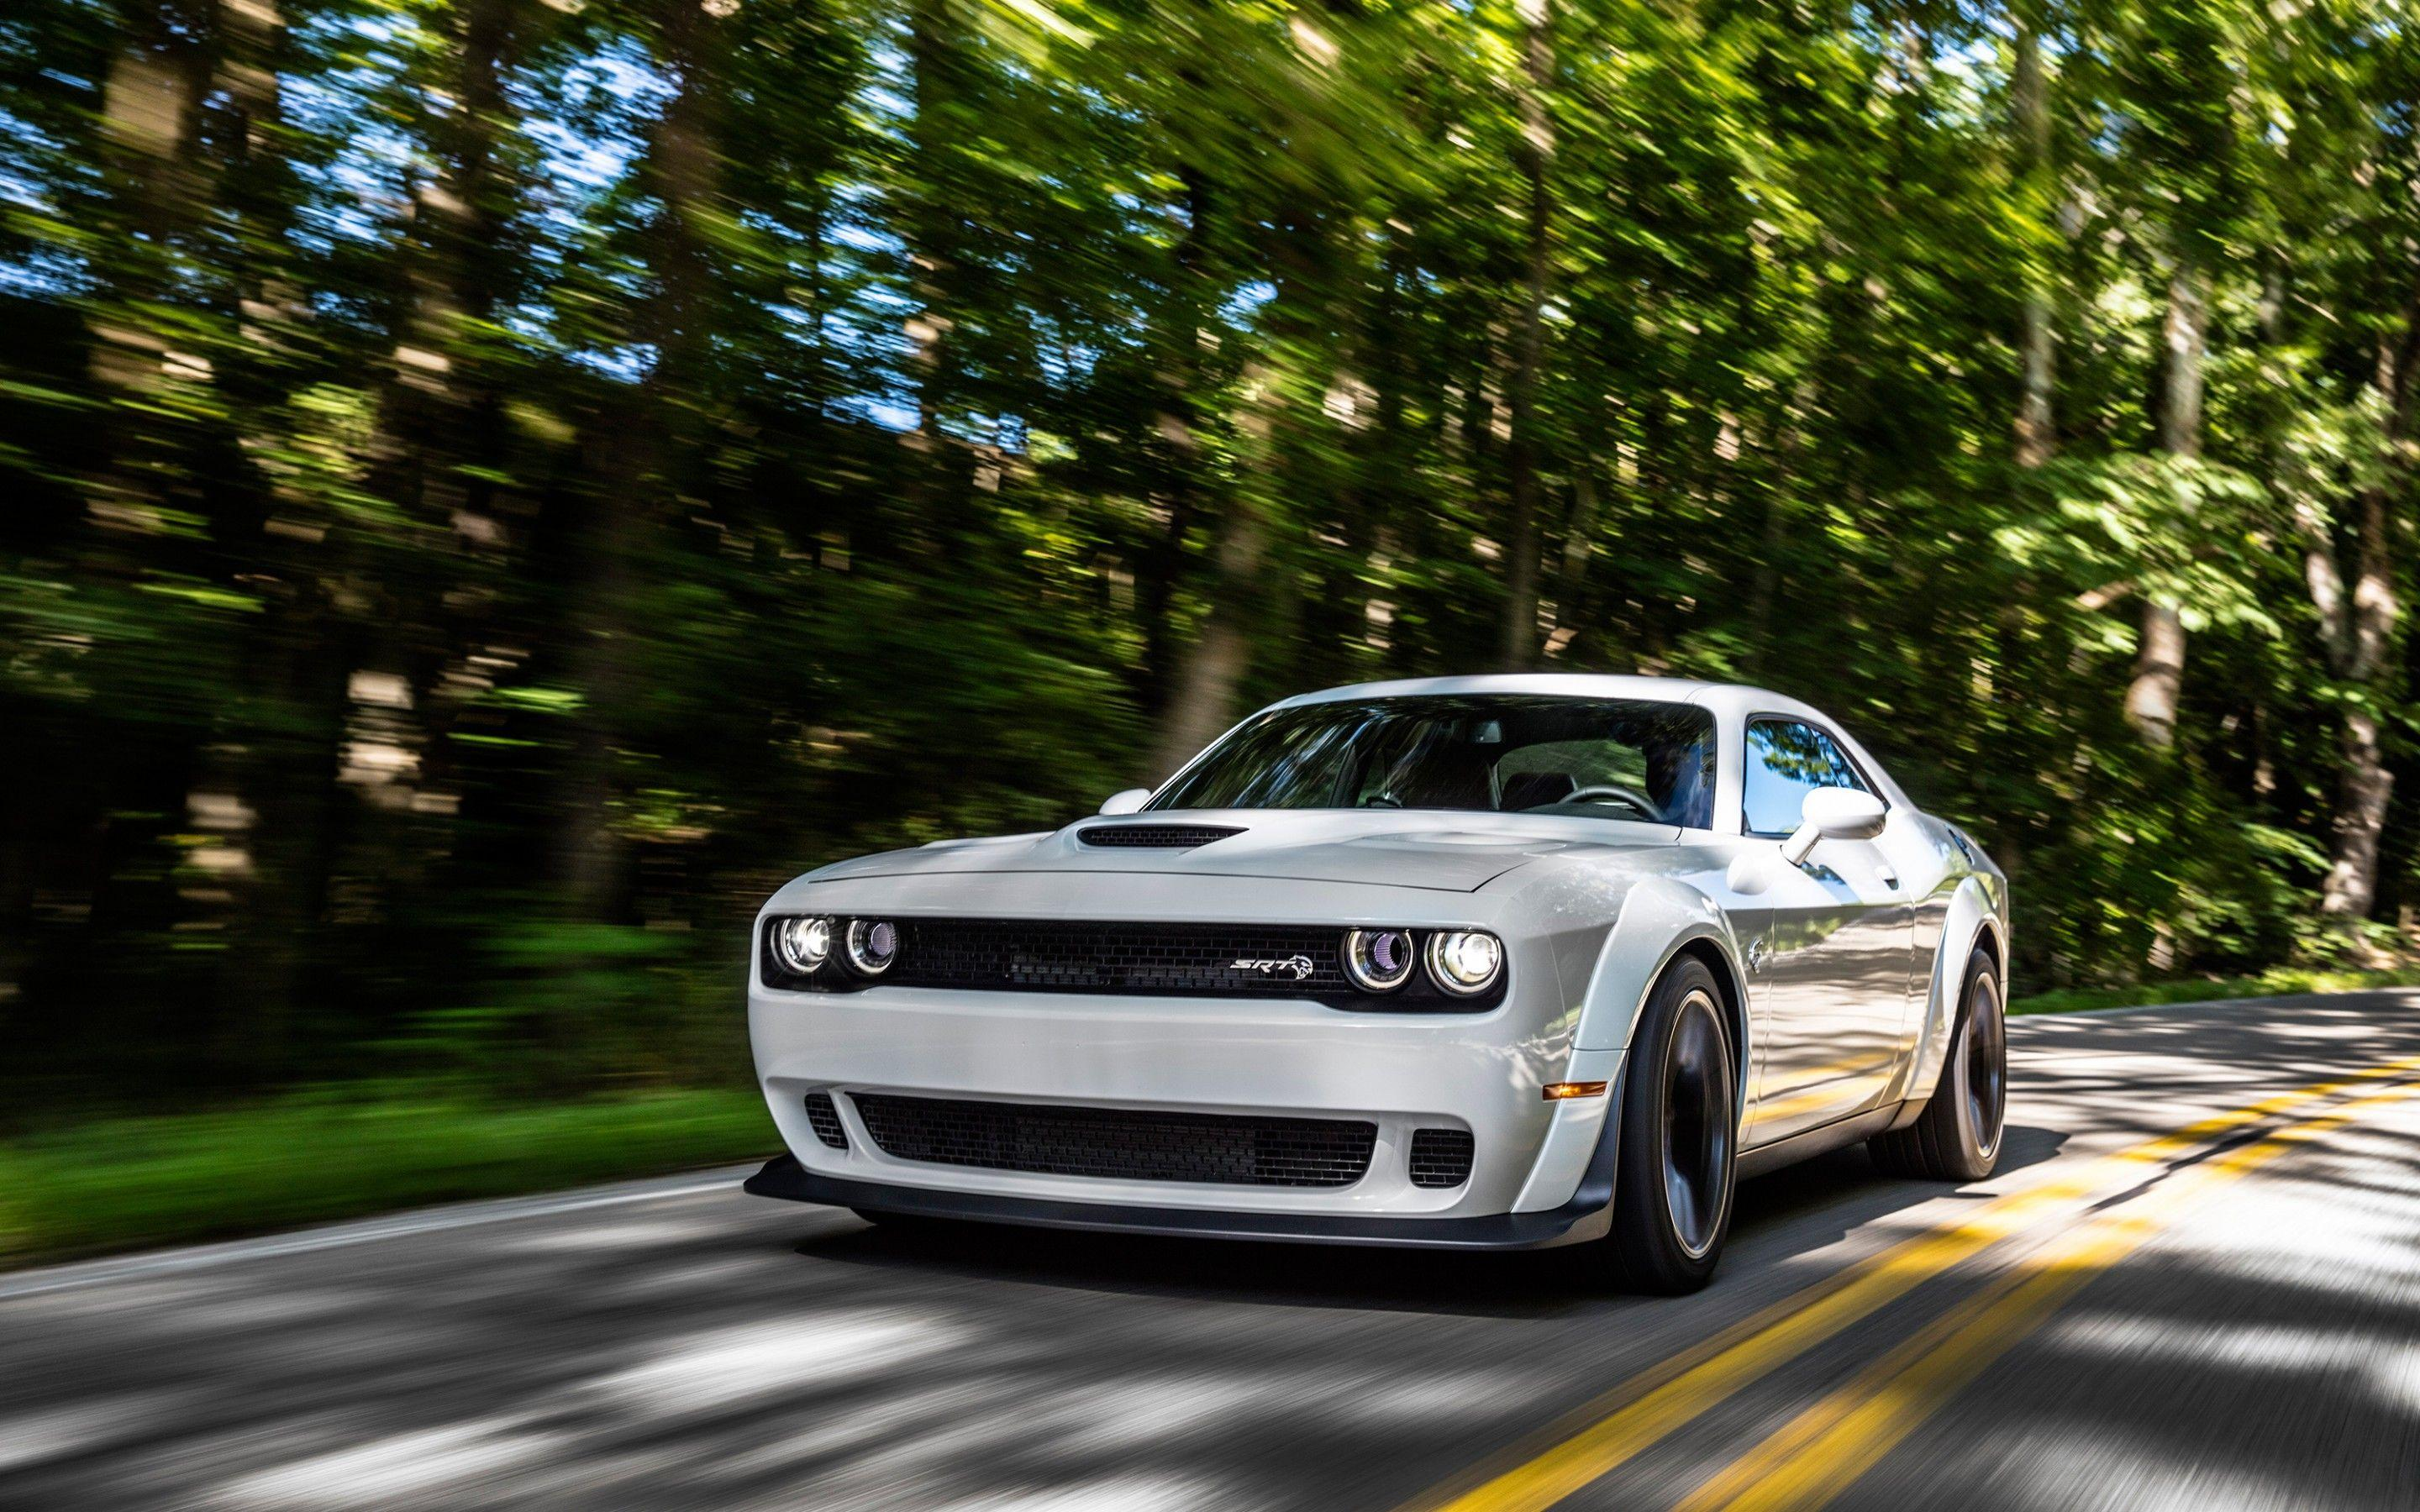 Wallpapers Dodge Challenger SRT Hellcat Widebody, White, HD, 2018